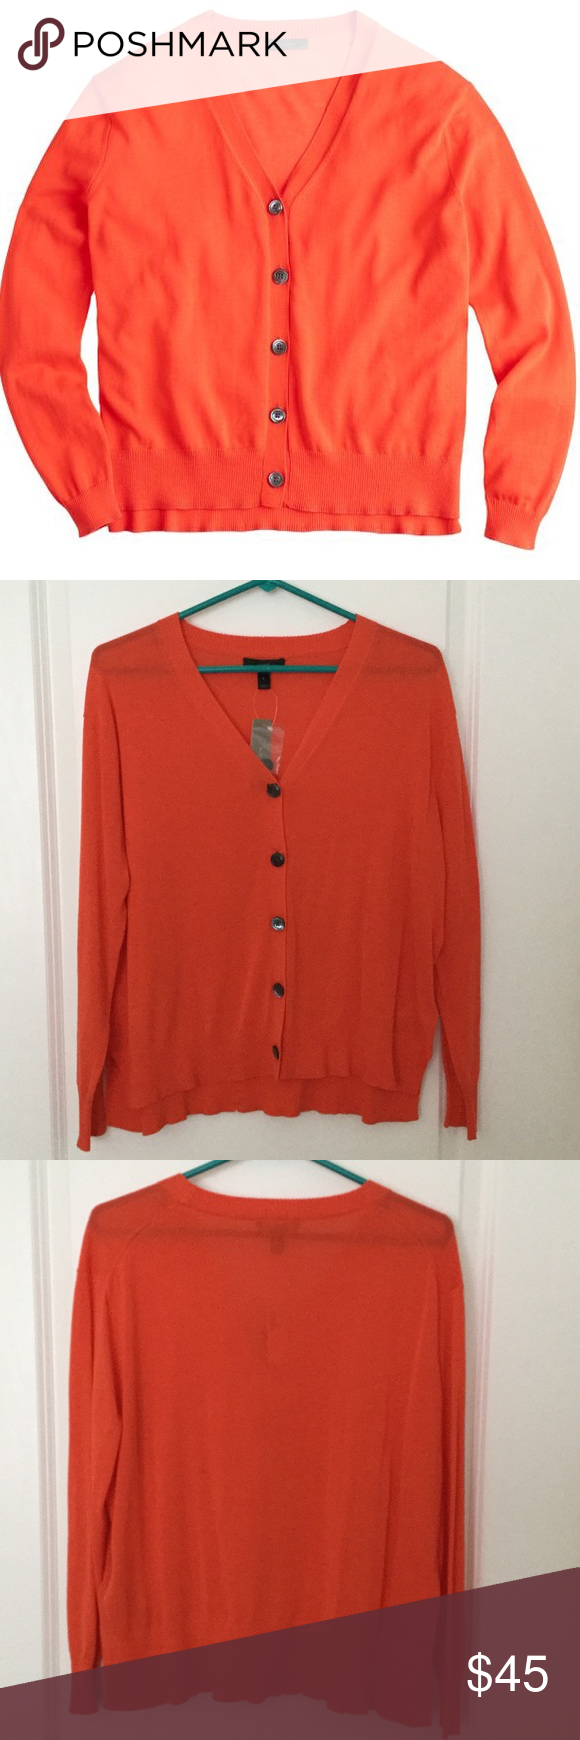 Bright Orange Summer Cardigan A classic V-neck cardigan made with ...